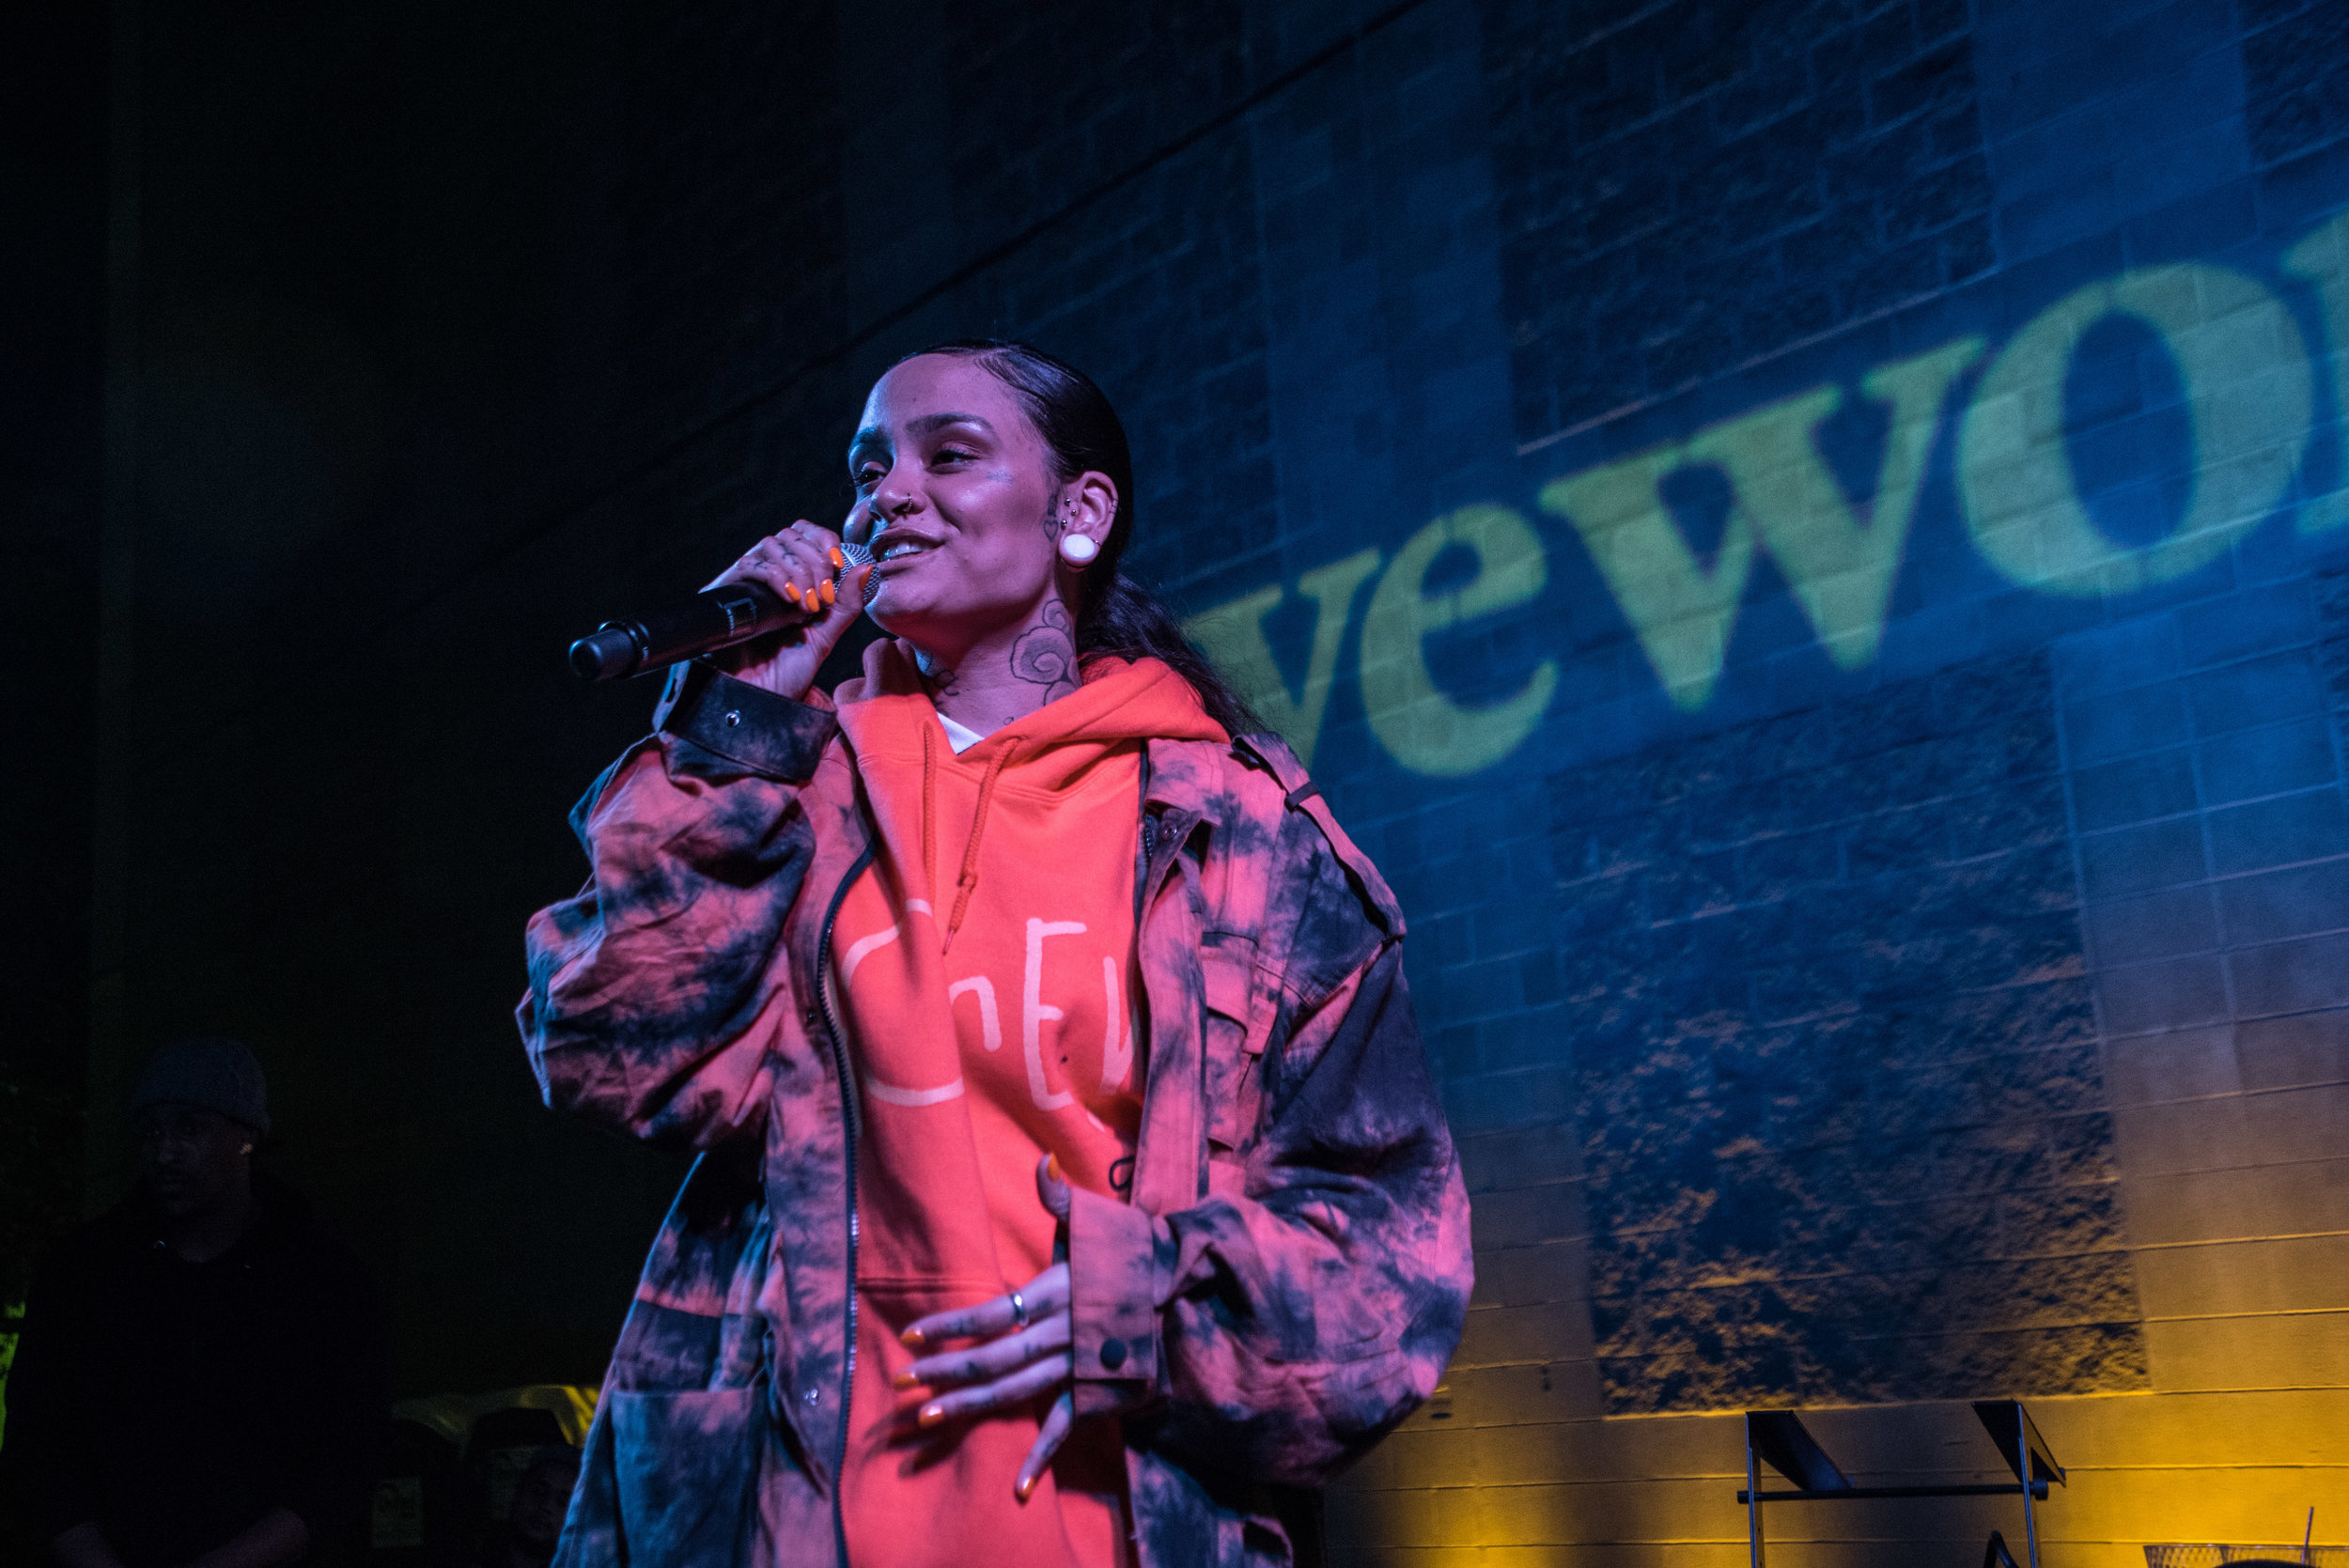 BLOCK PARTY FEATURING KEHLANI | WEWORK